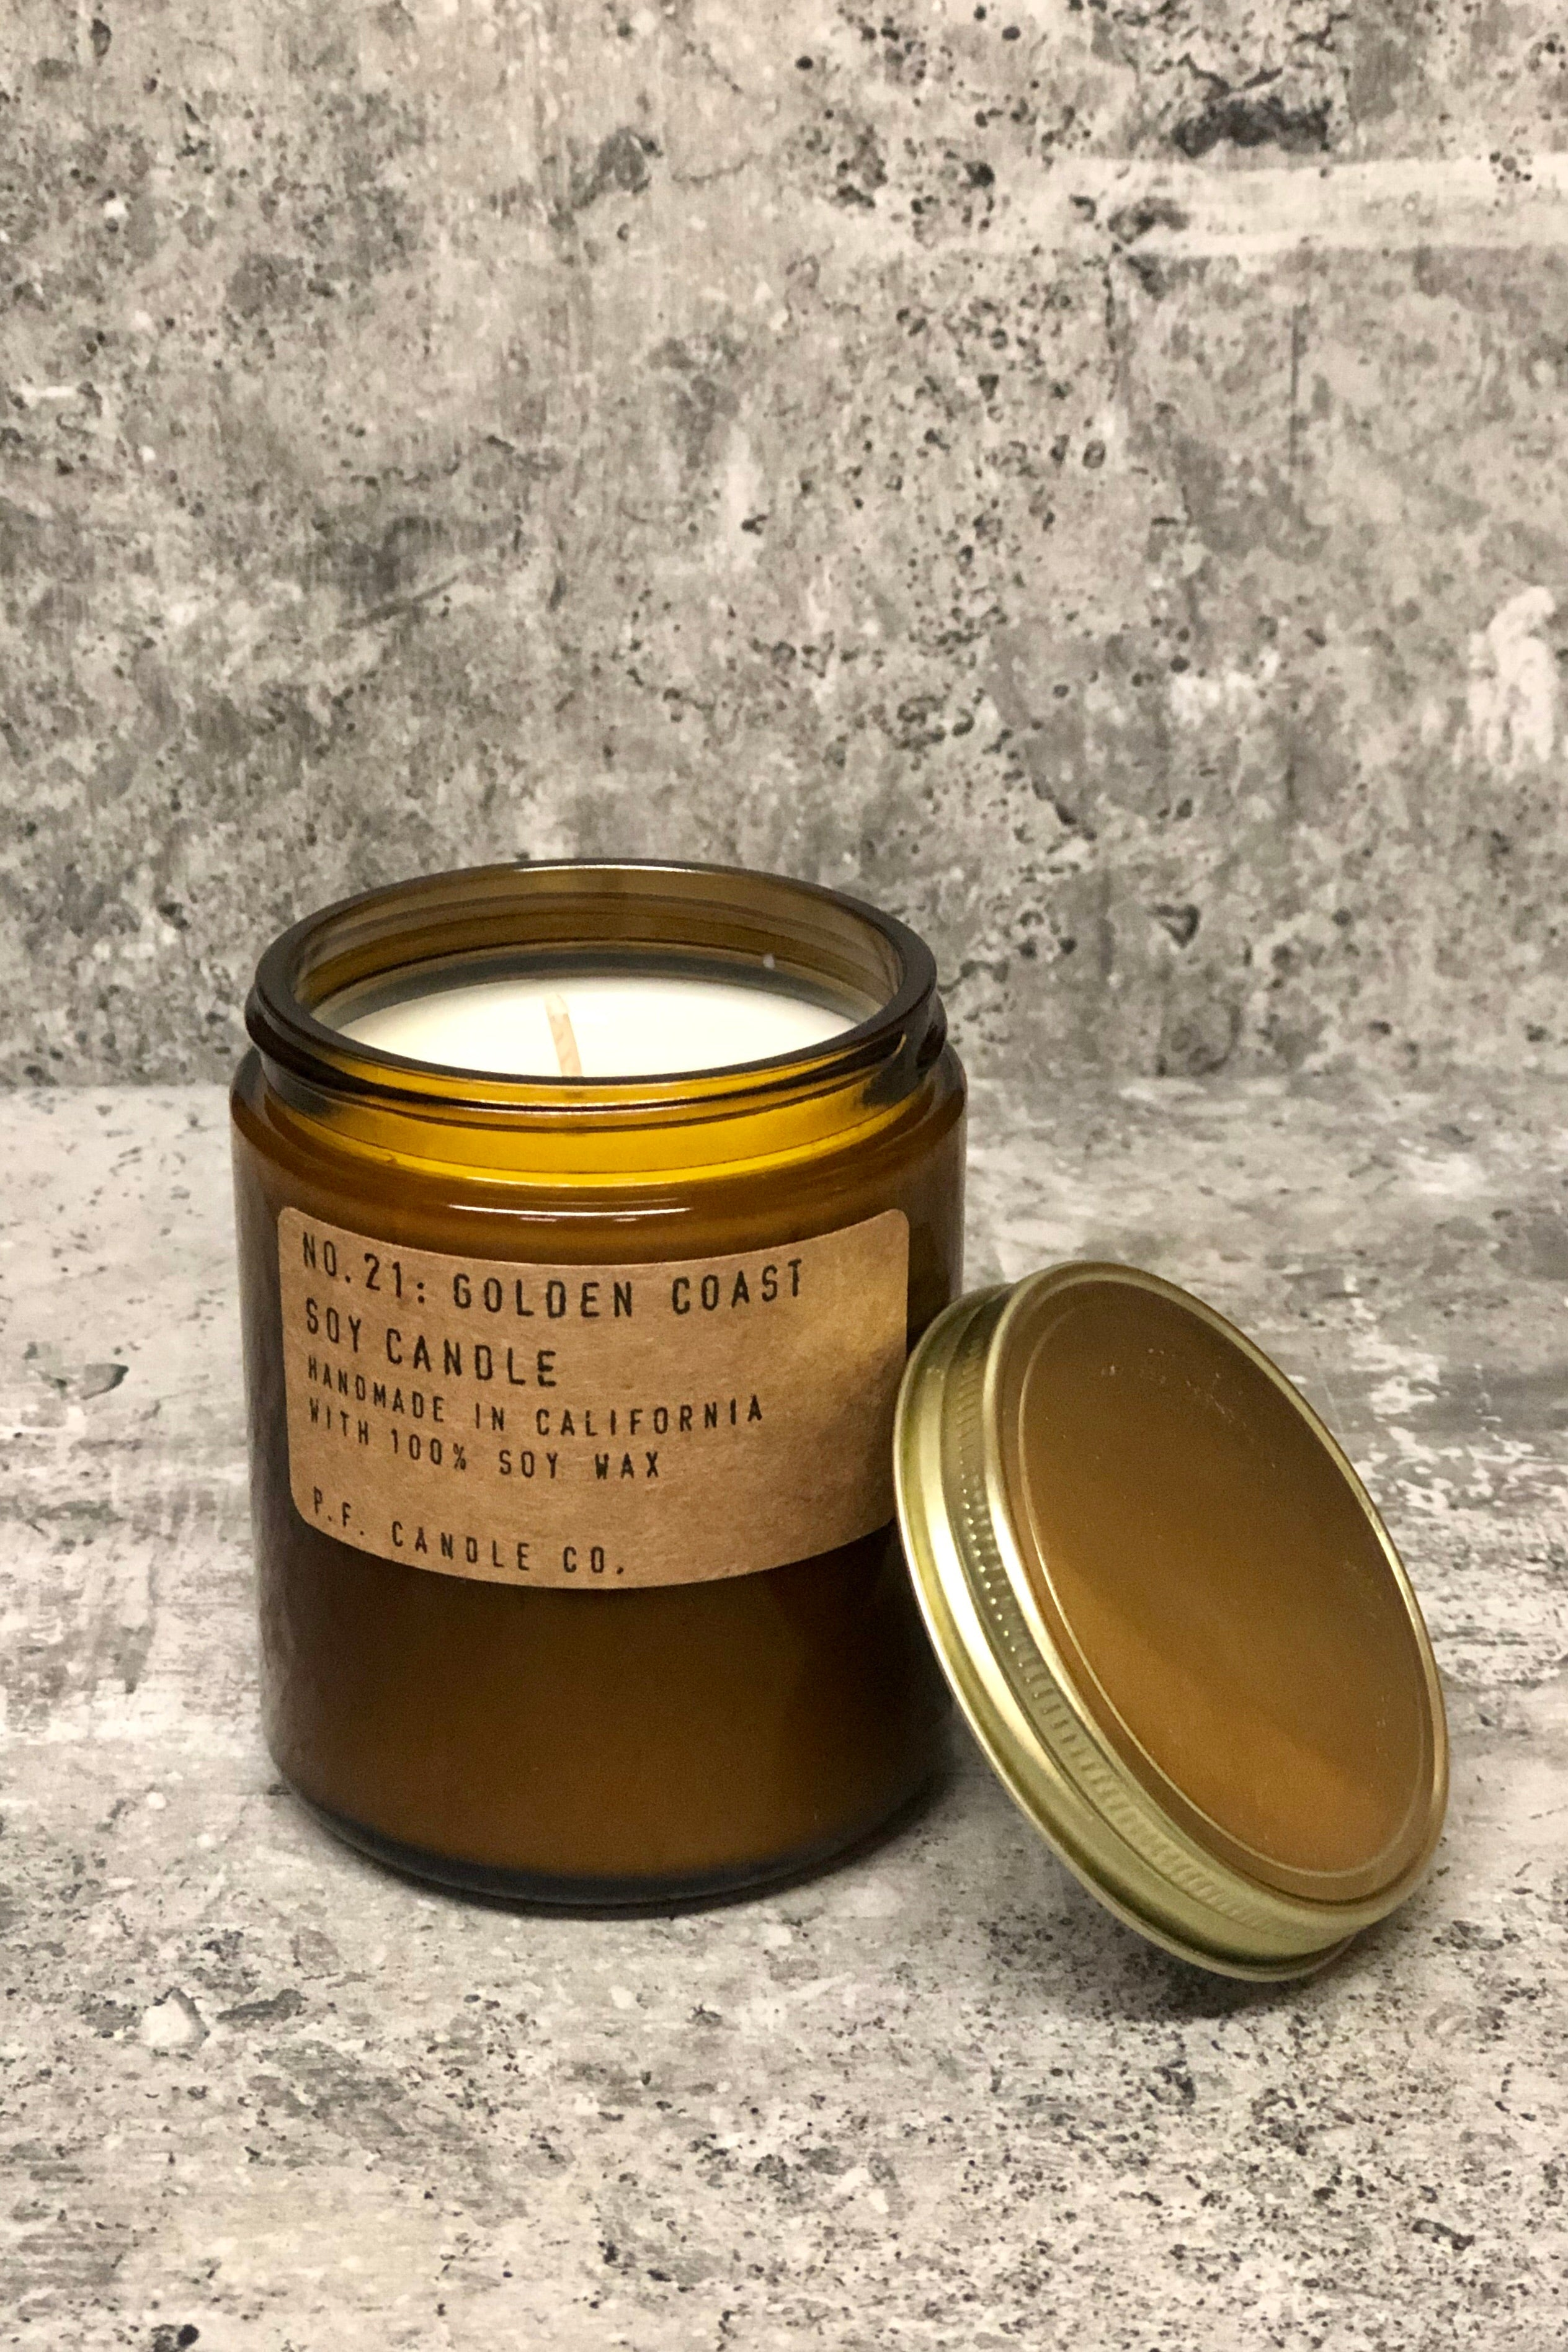 Golden Coast Jar Candle-7.2 oz